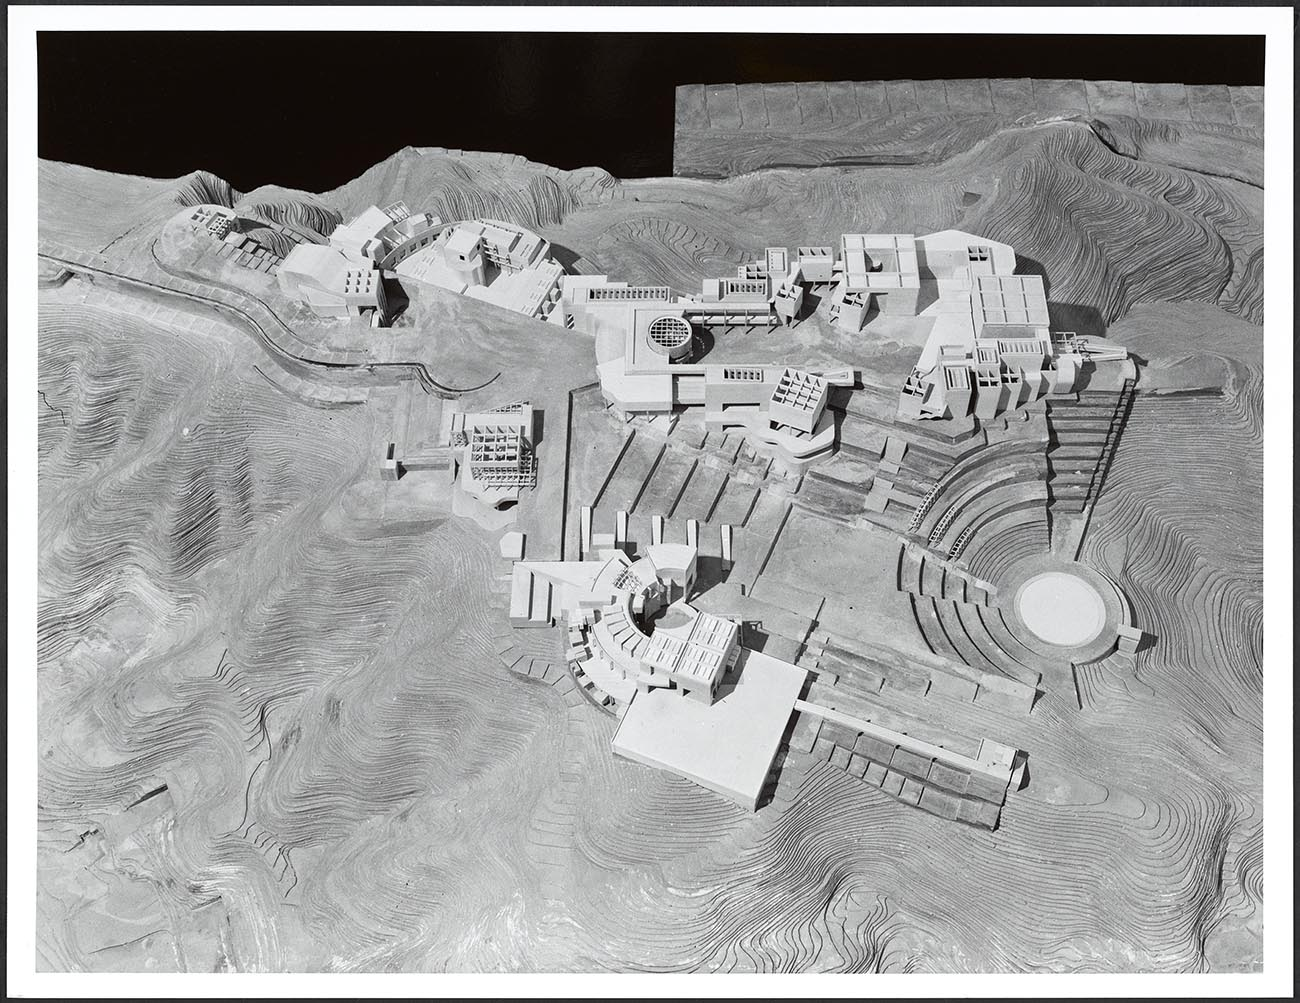 Black and white photograph of an architectural model of buildings from above